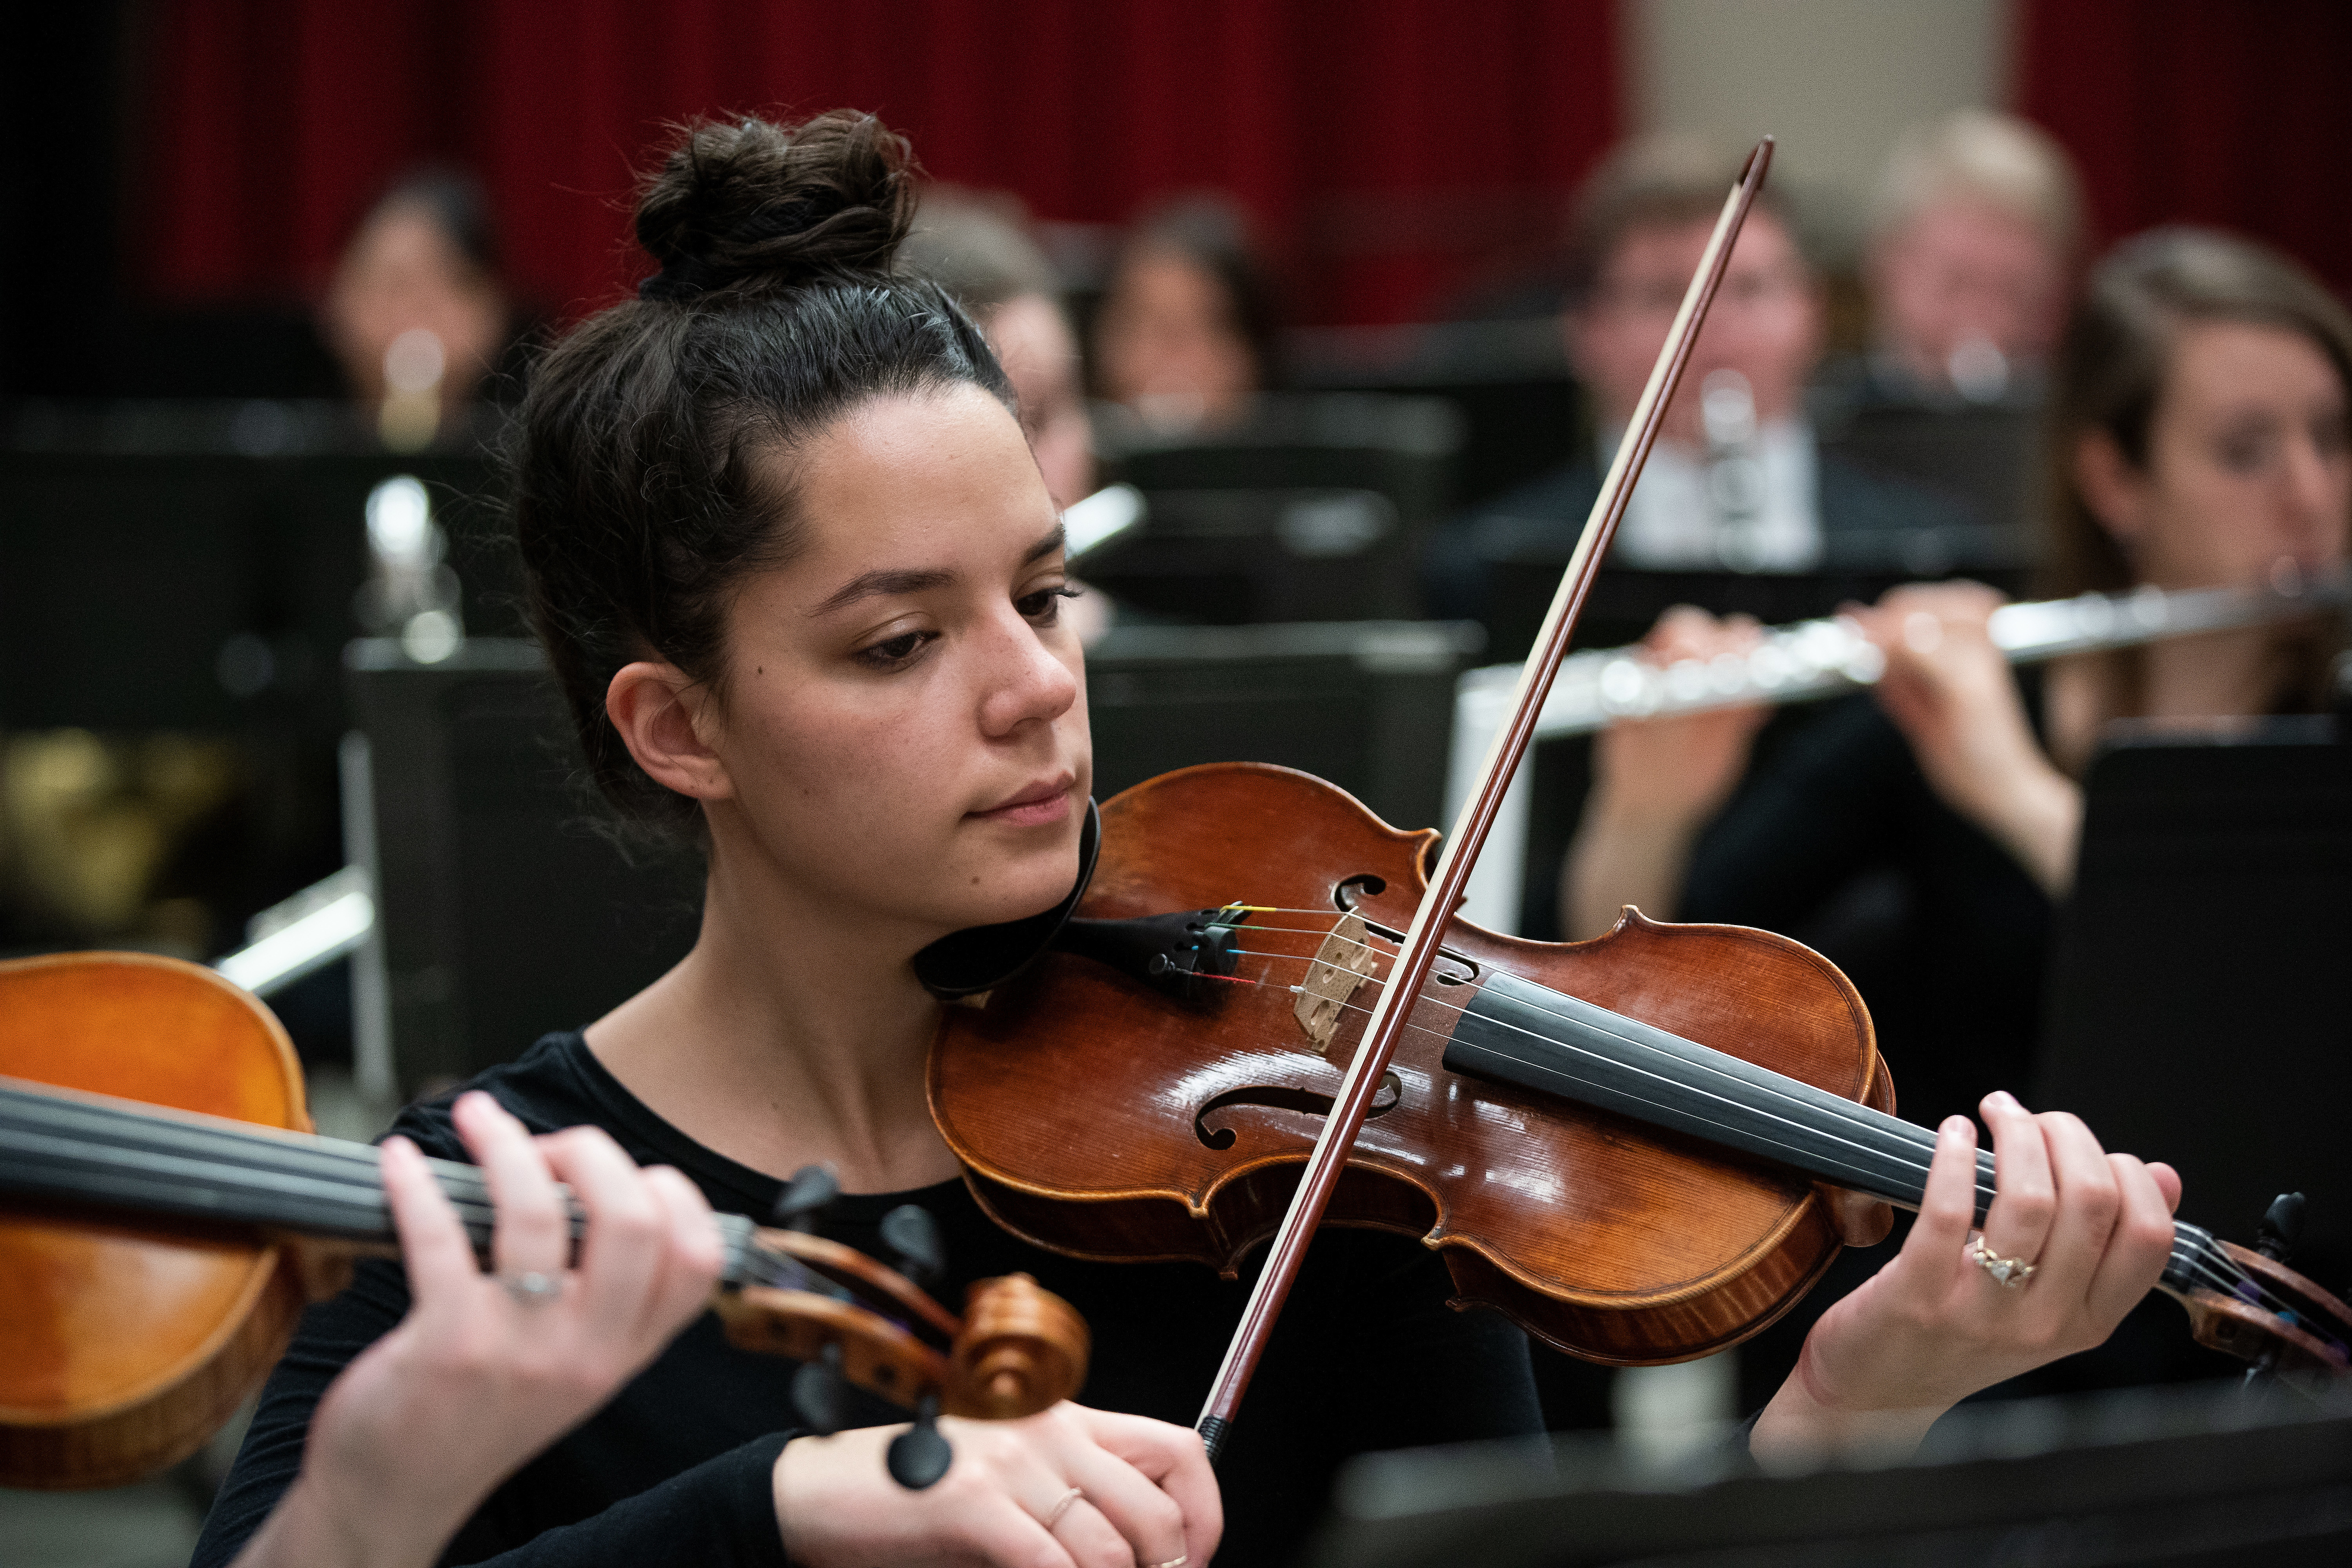 1903-61 038  1903-61 Chamber Orchestra Rehearsal  BYU Chamber Orchestra  March 26, 2019  Photo by Jaren Wilkey/BYU  © BYU PHOTO 2019 All Rights Reserved photo@byu.edu  (801)422-7322